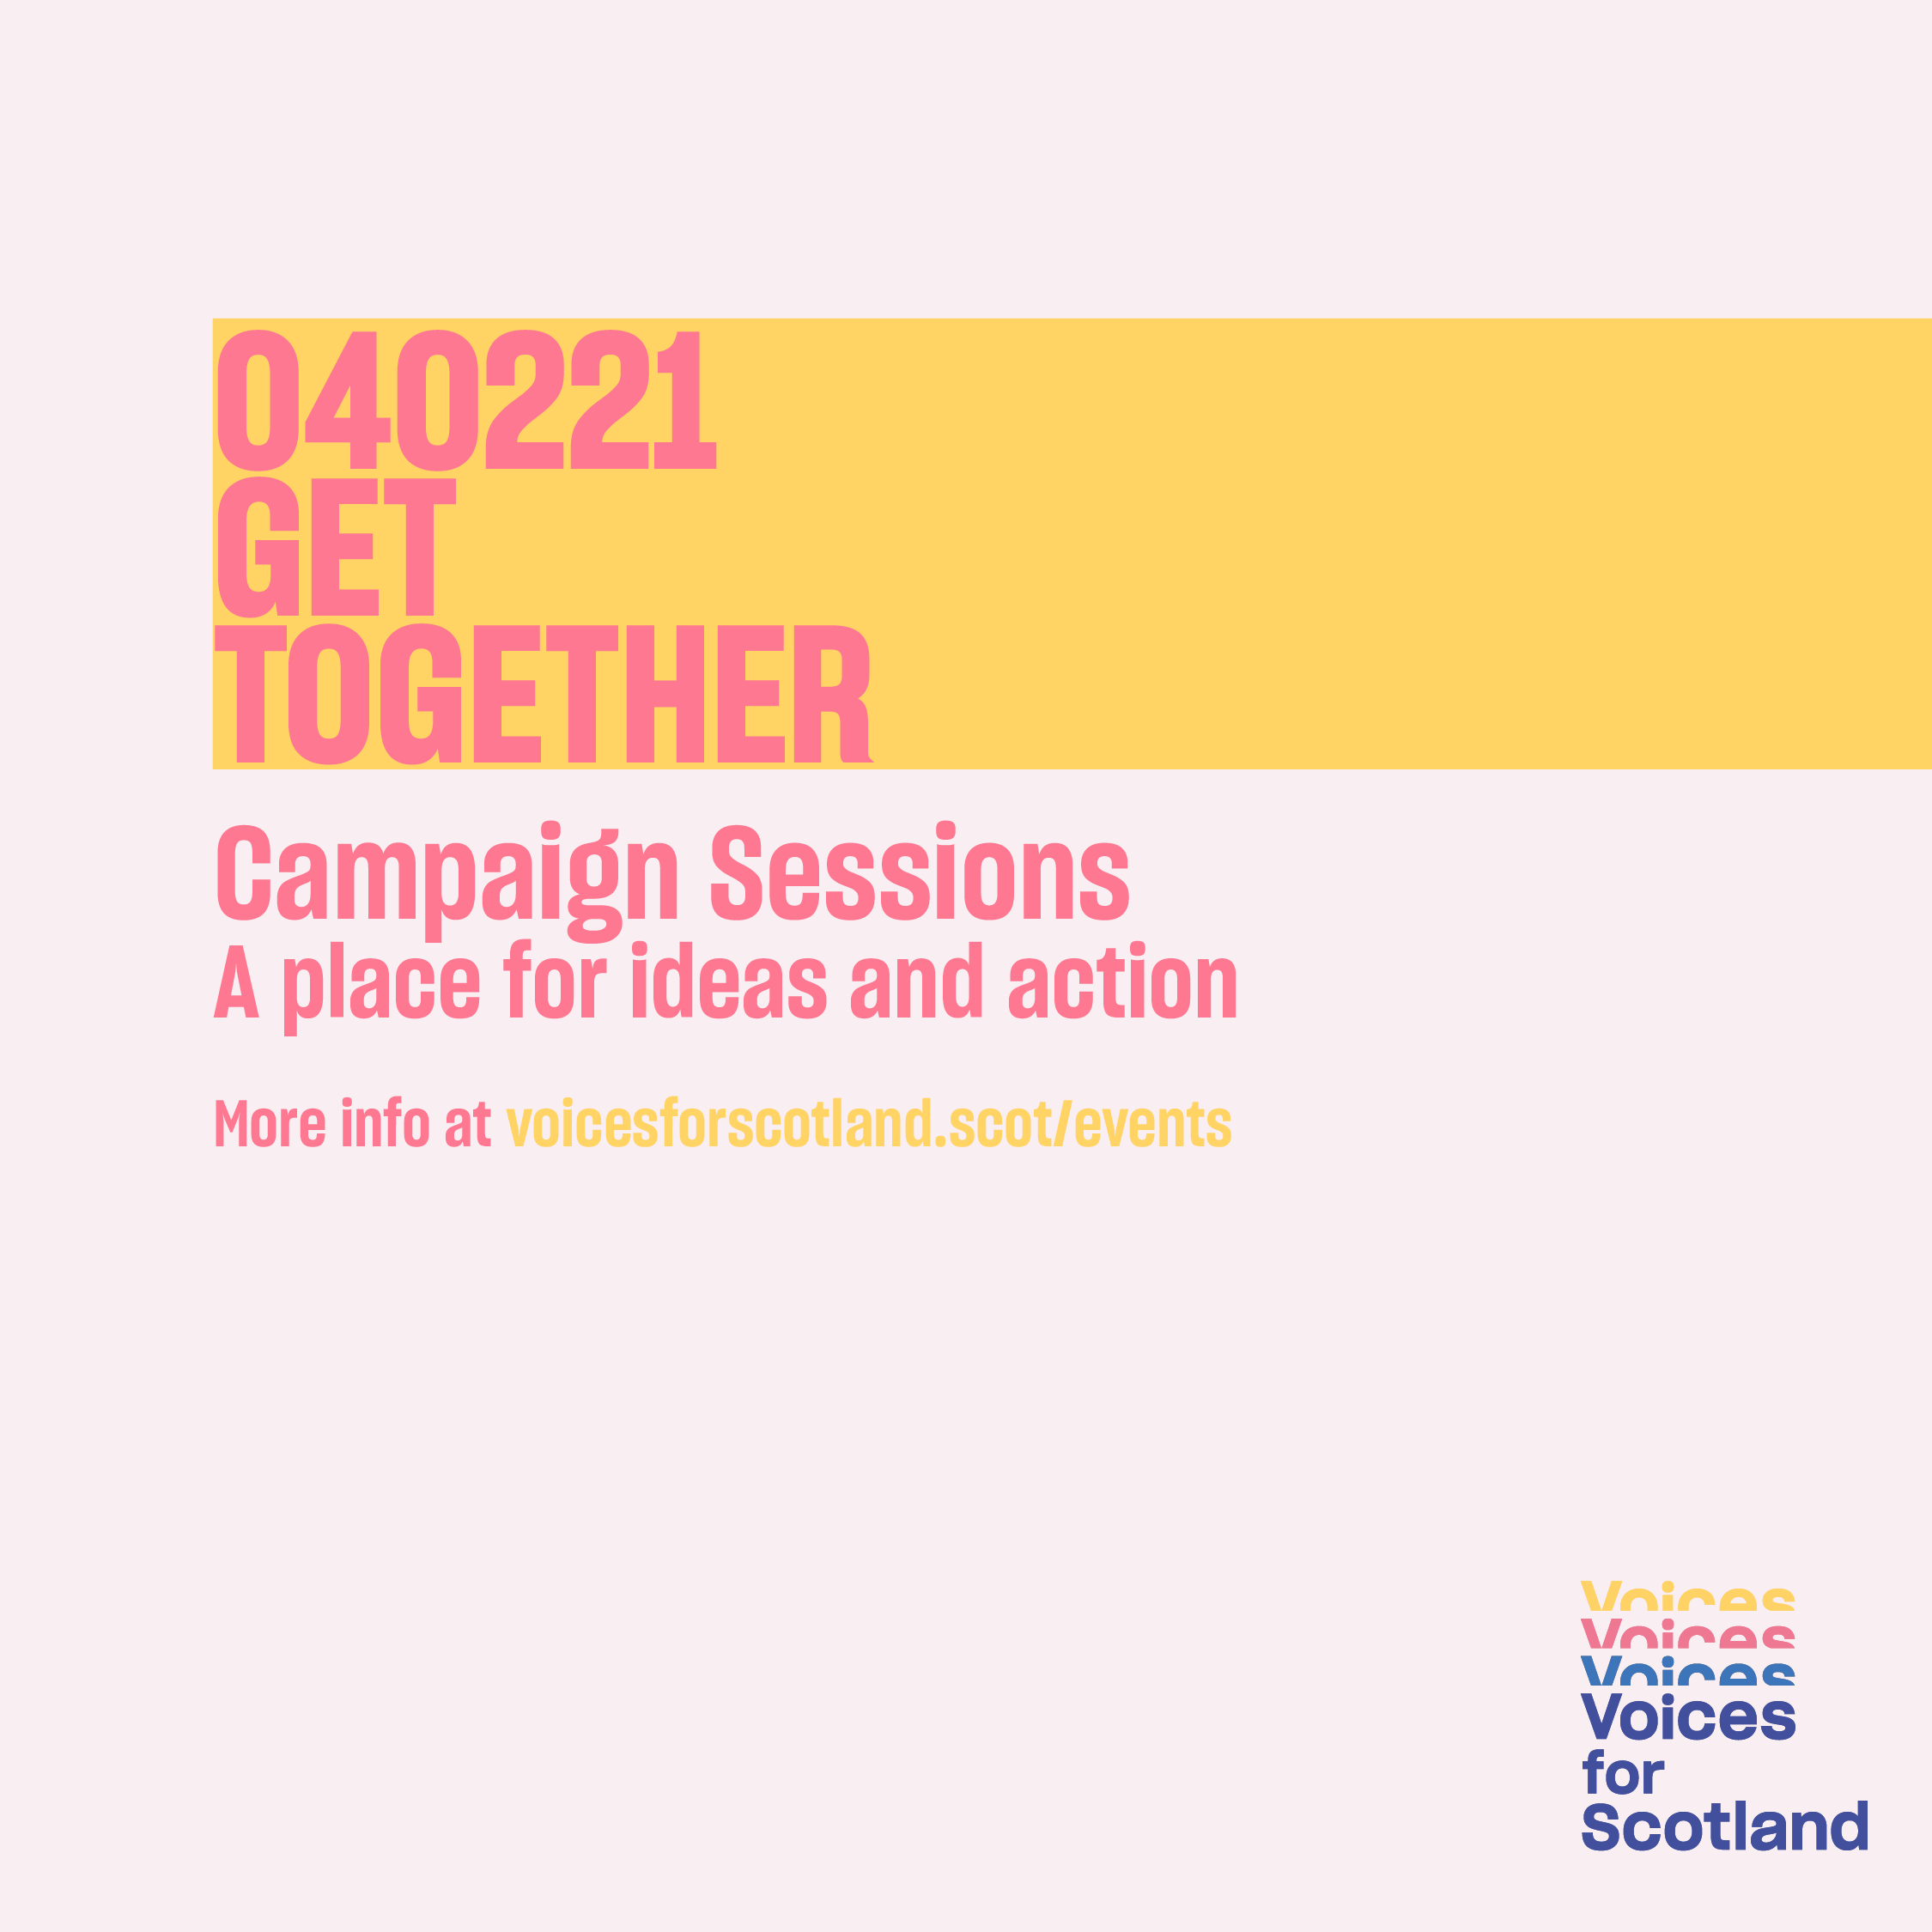 Image for campaign event on 4 February 2021